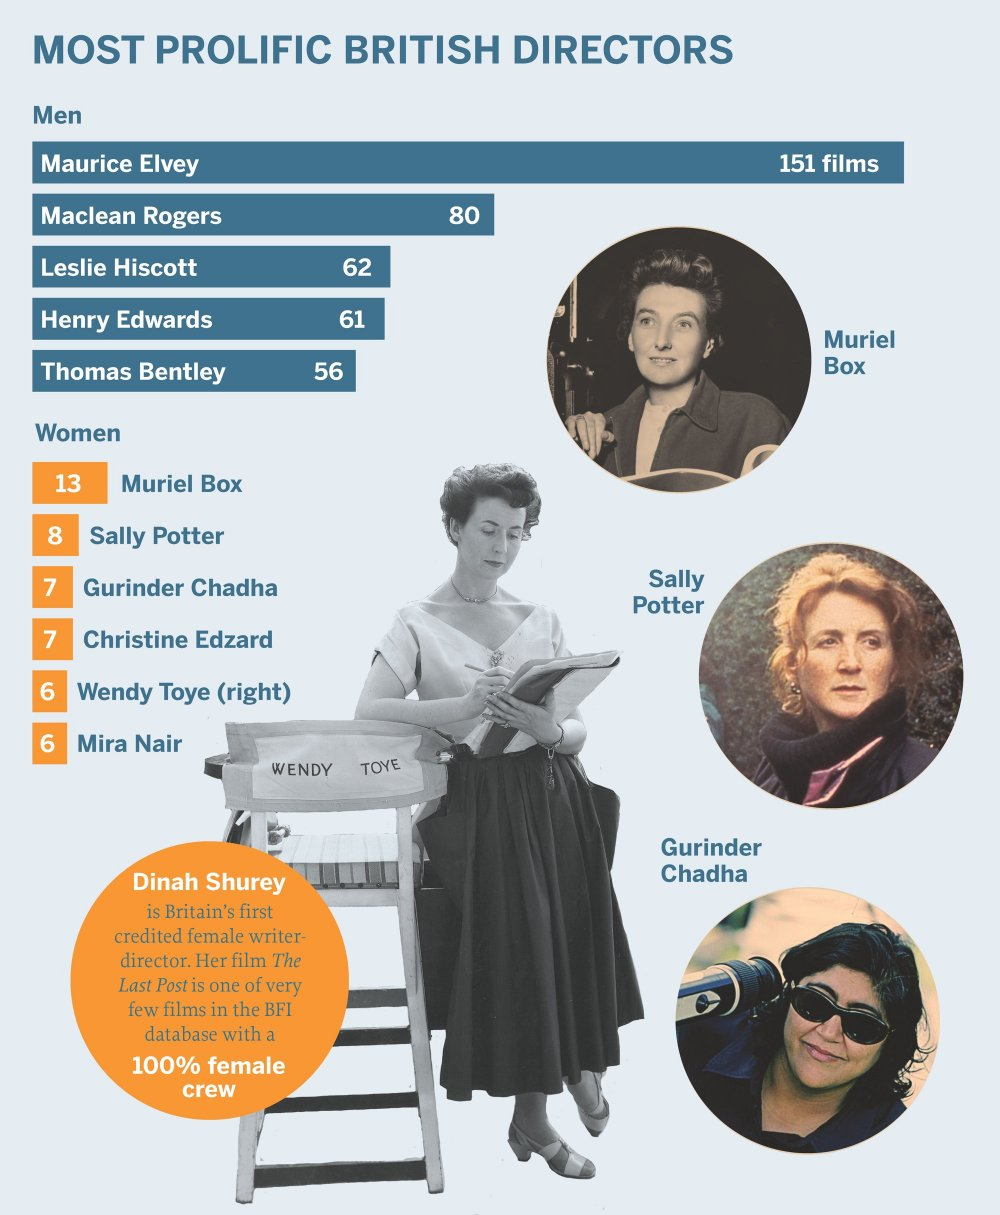 Most prolific British directors, male and female